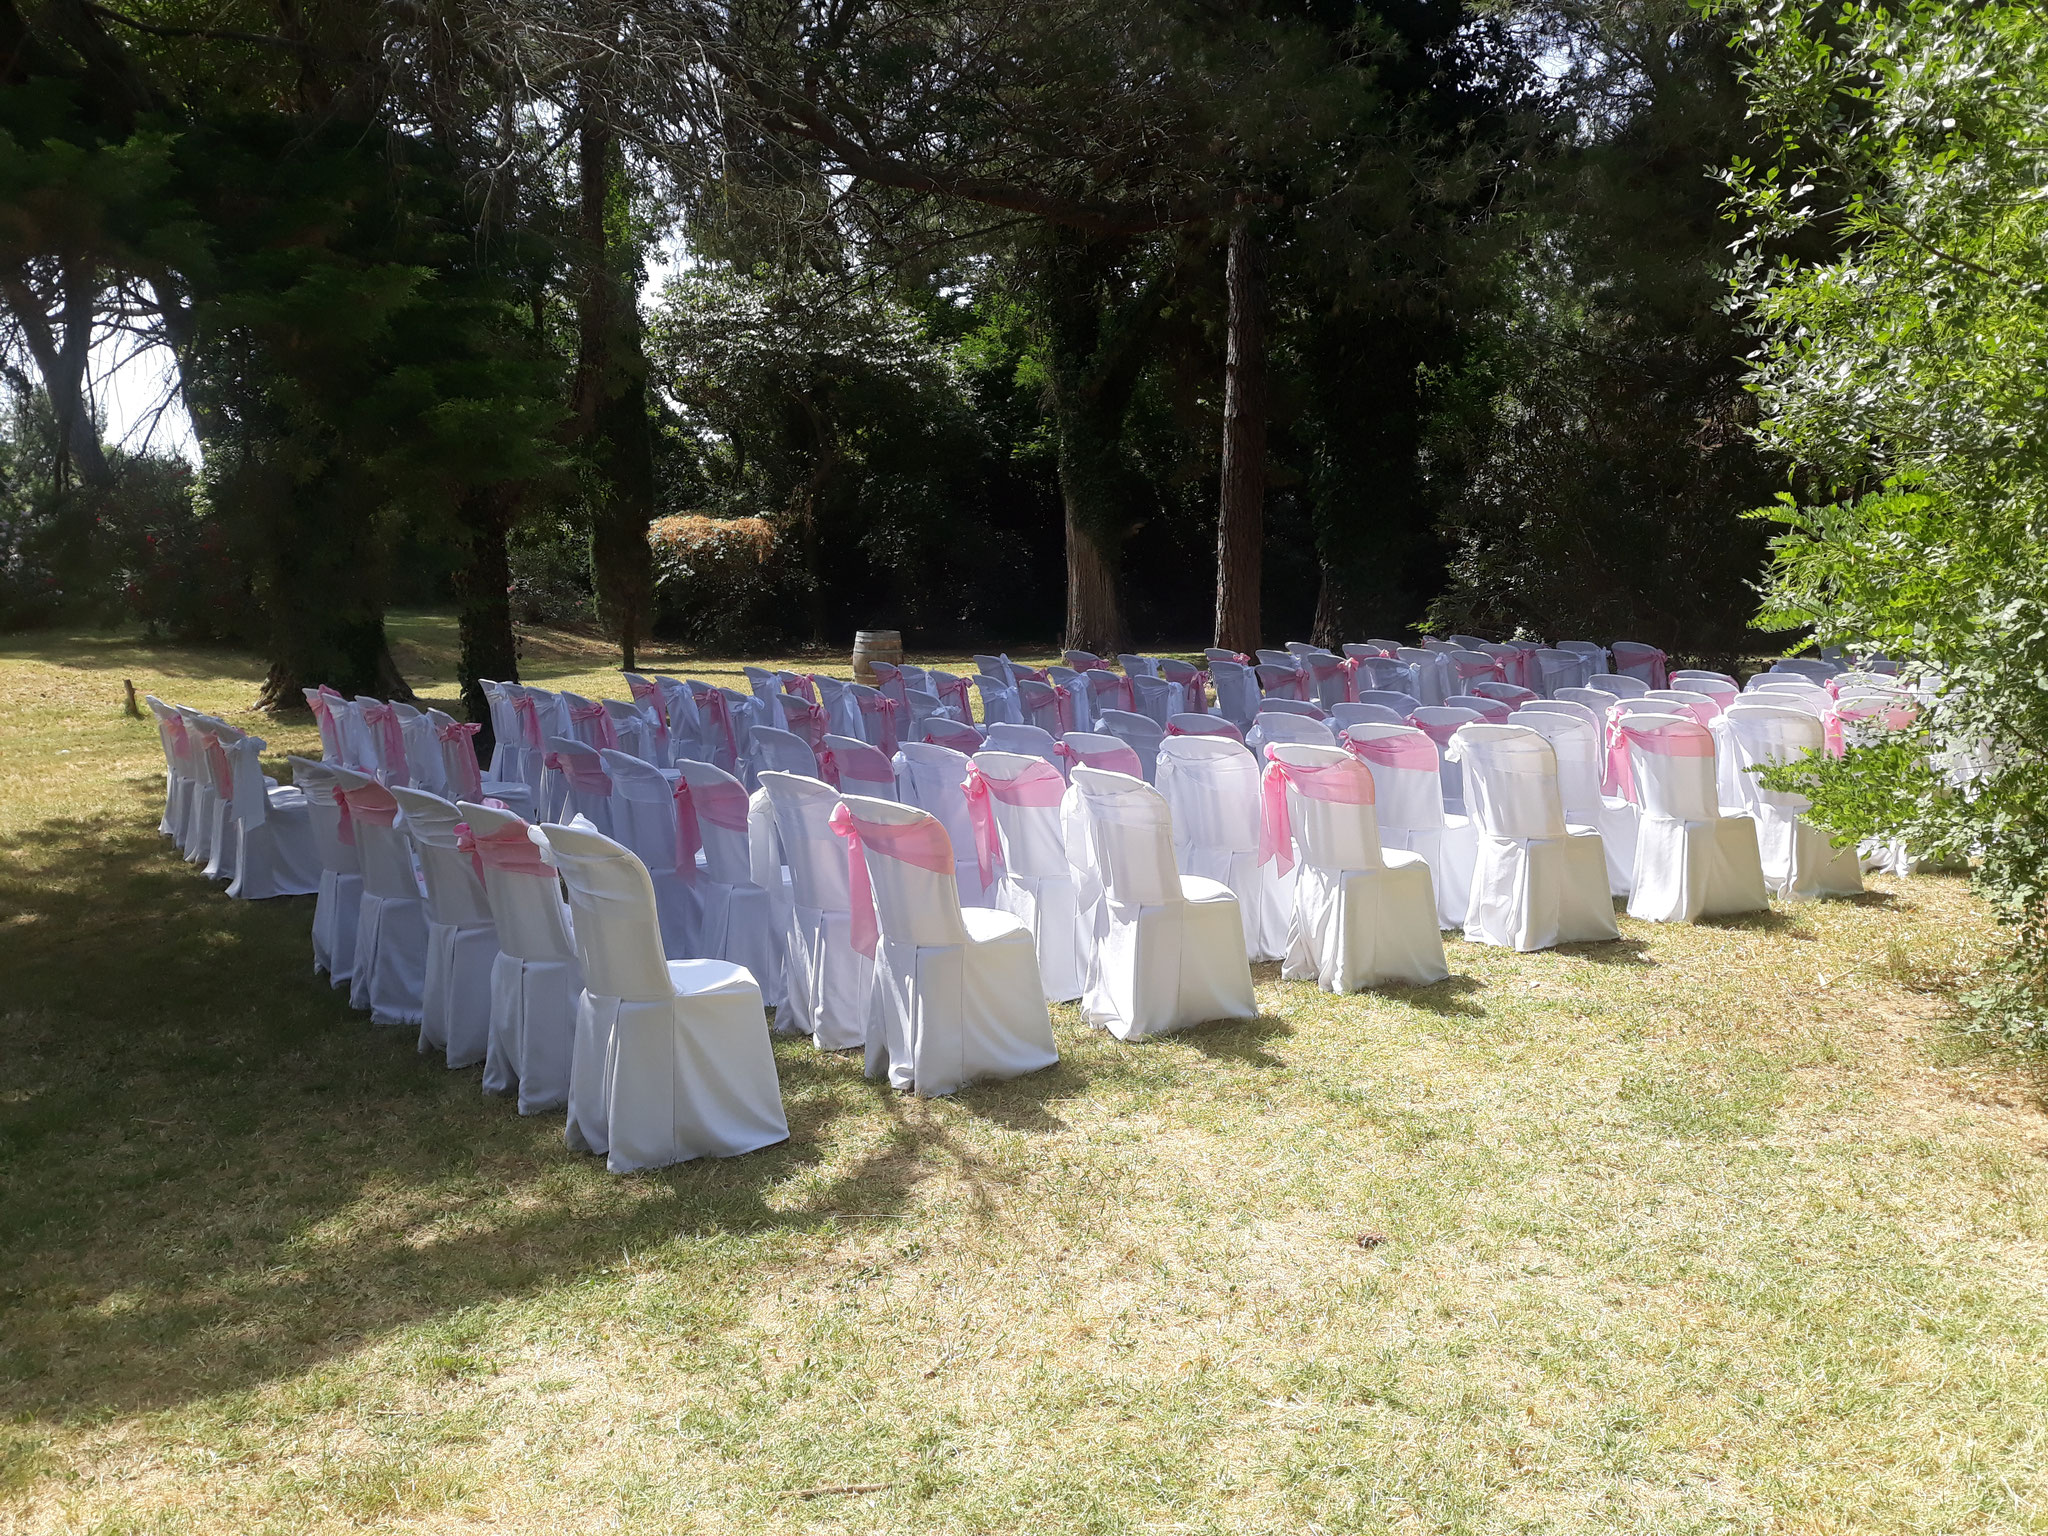 Housses Chaises Mariage Location Adequation Nœuds mnv80wyPNO